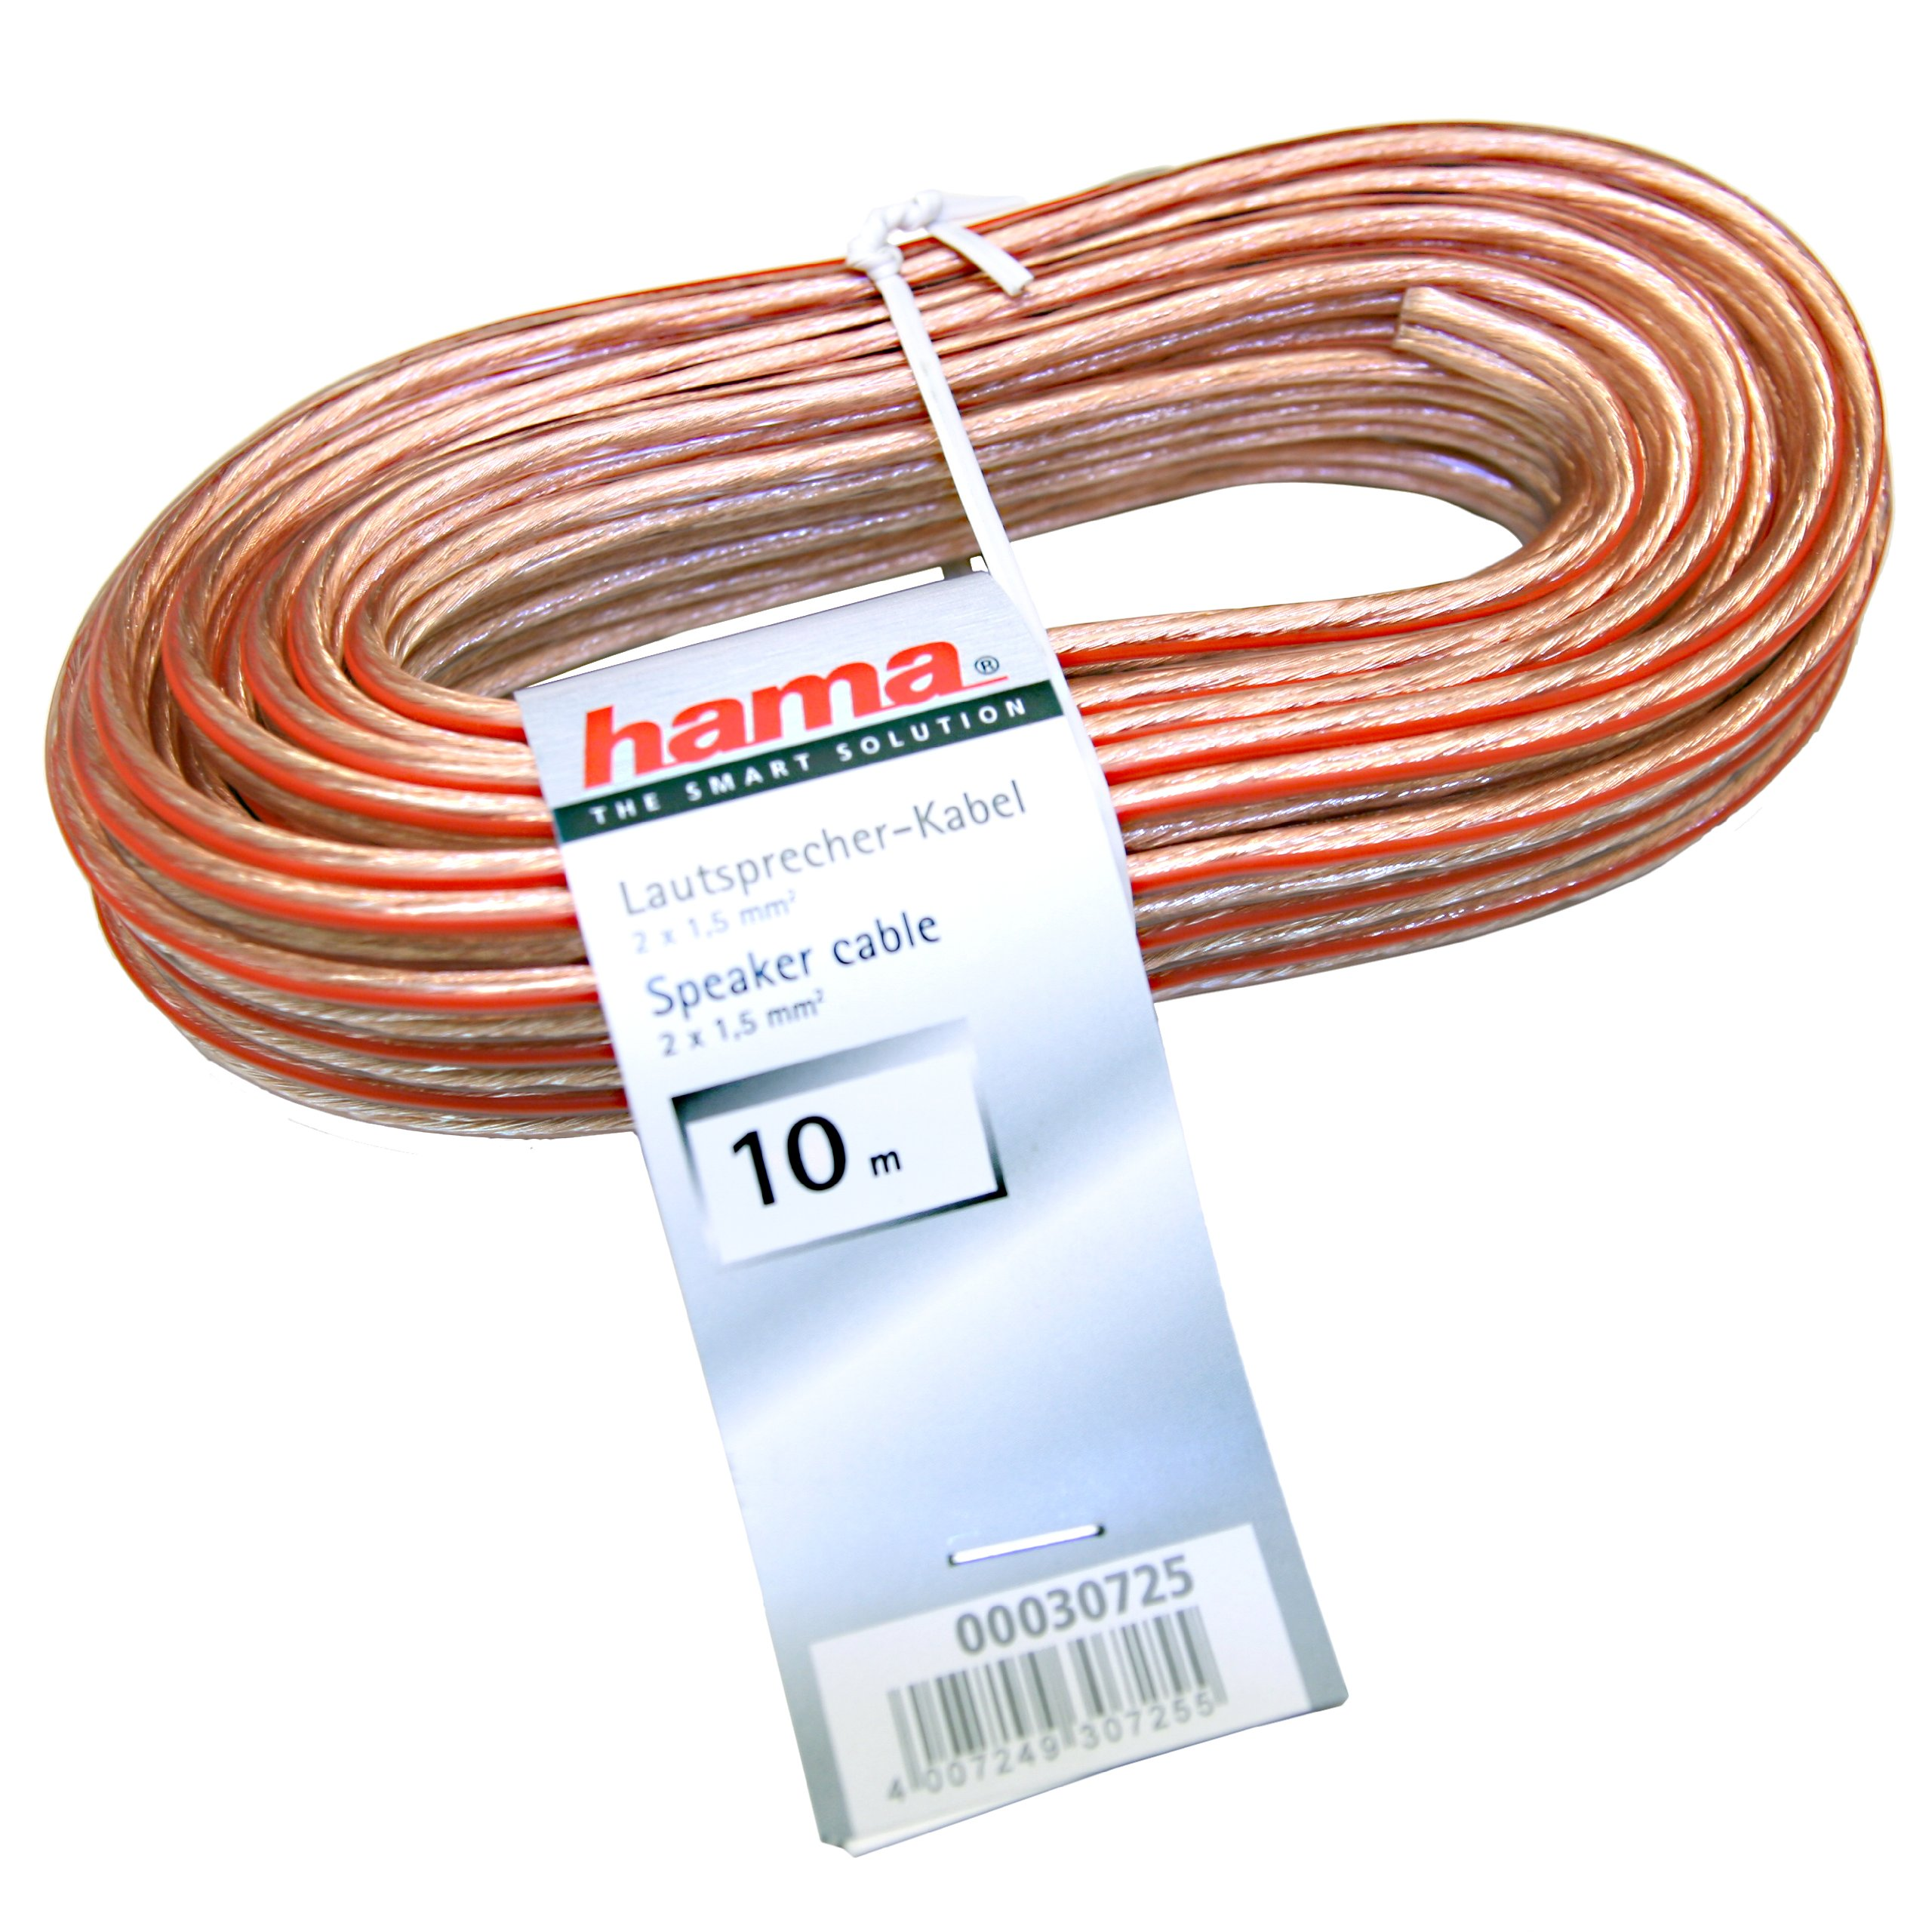 Hama 030725 - Cable de altavoces 2x1,5 mm, 10 m product image